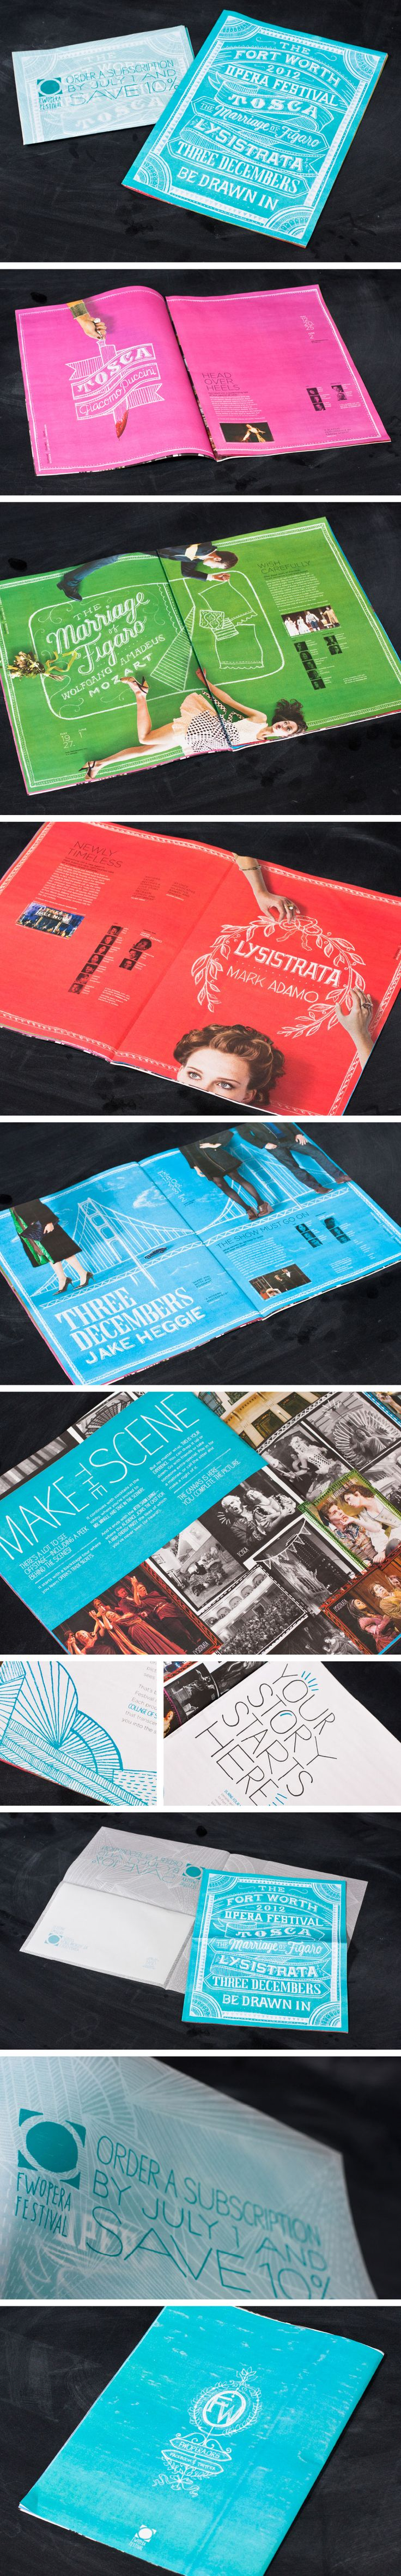 Fort Worth Opera brochure | Designer: Matchbox  Layout/typographic headlines/vibrant color